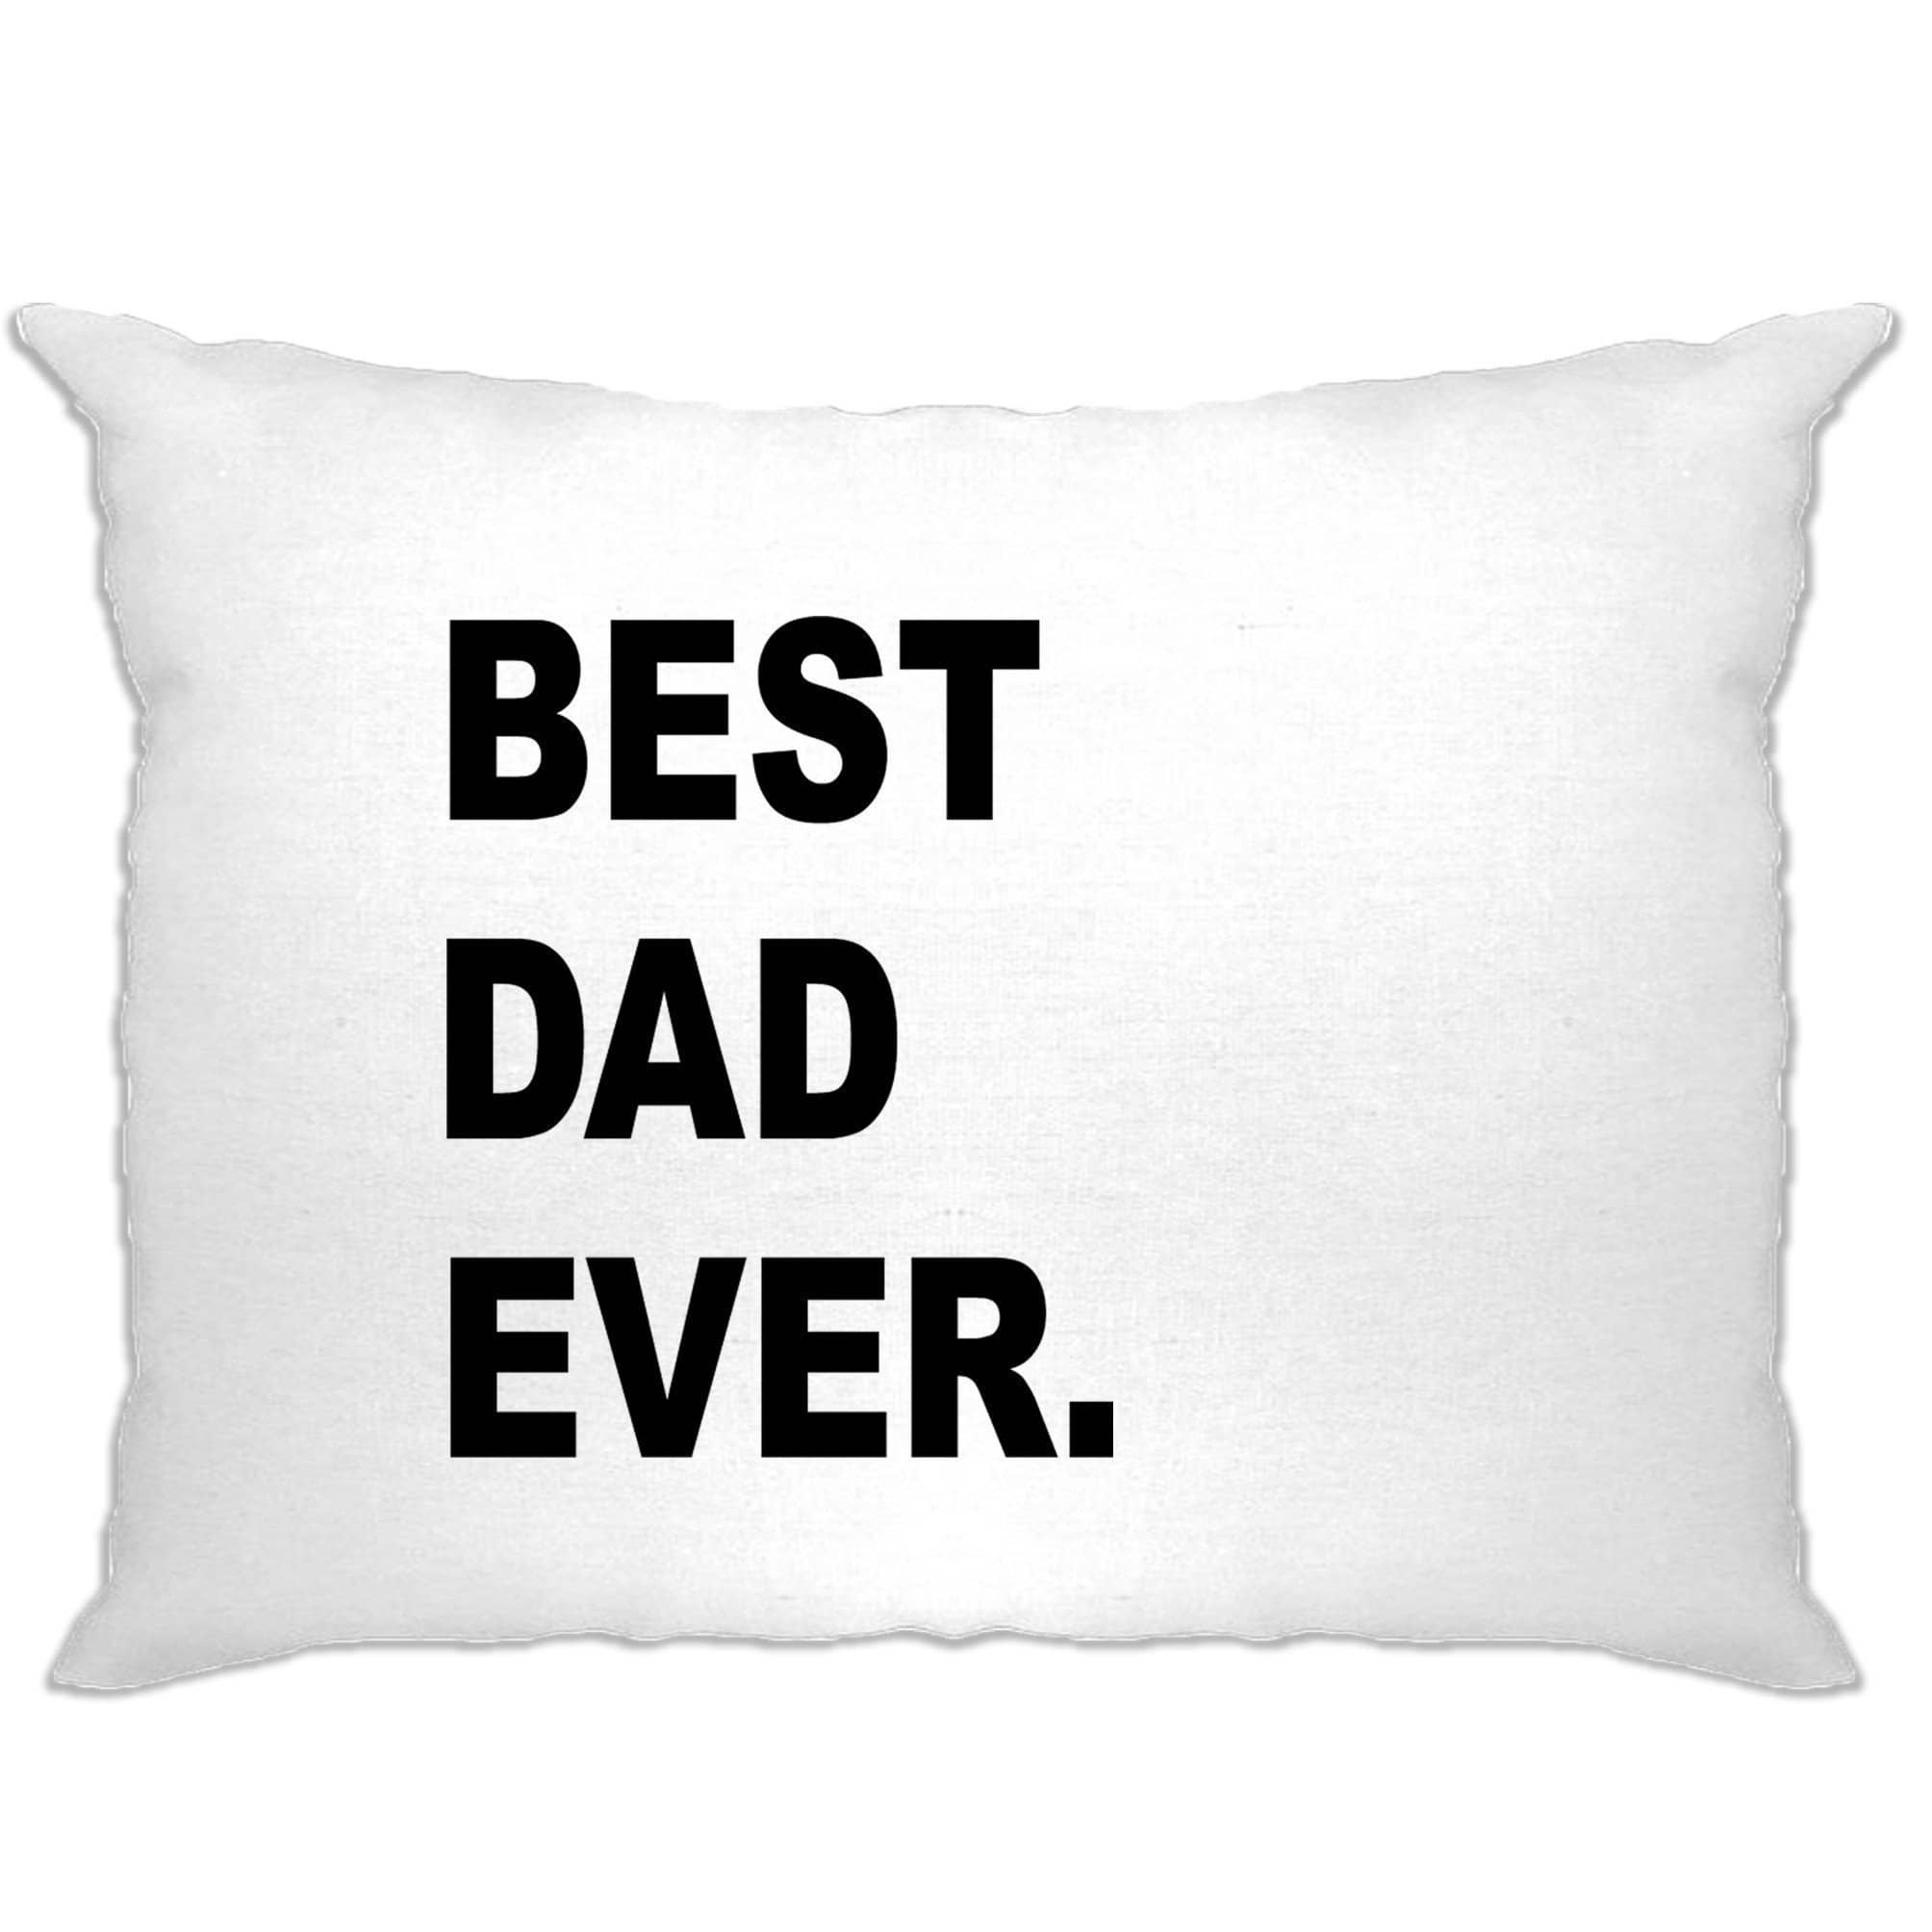 Best Dad Ever Pillow Case Parent Family Slogan